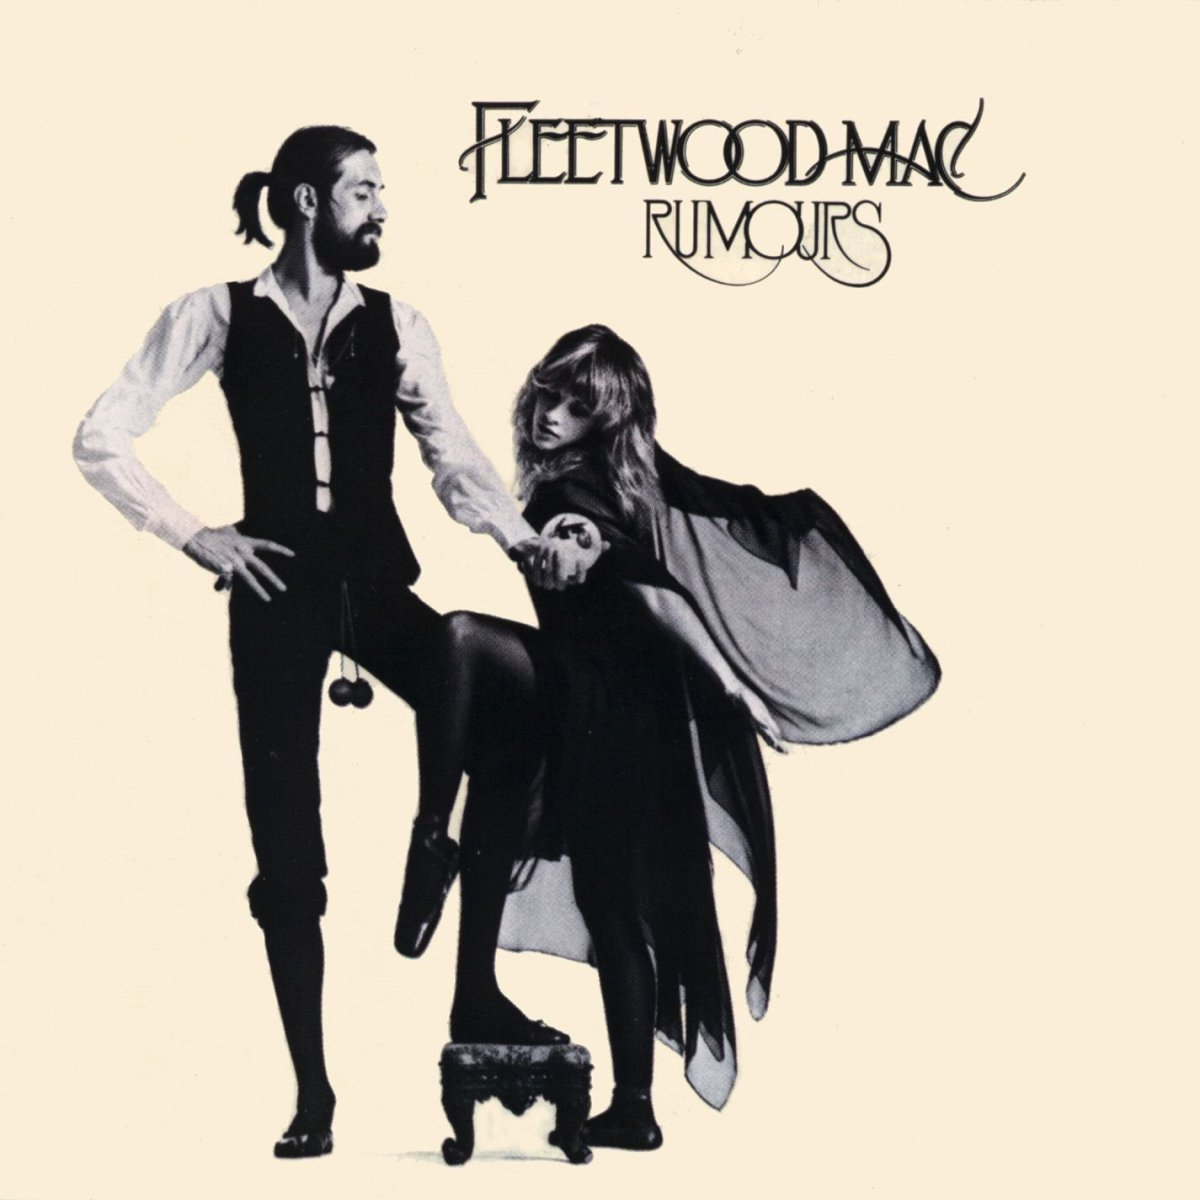 Fleetwood Mac – 'Rumors' (4 de febrero de 1977)